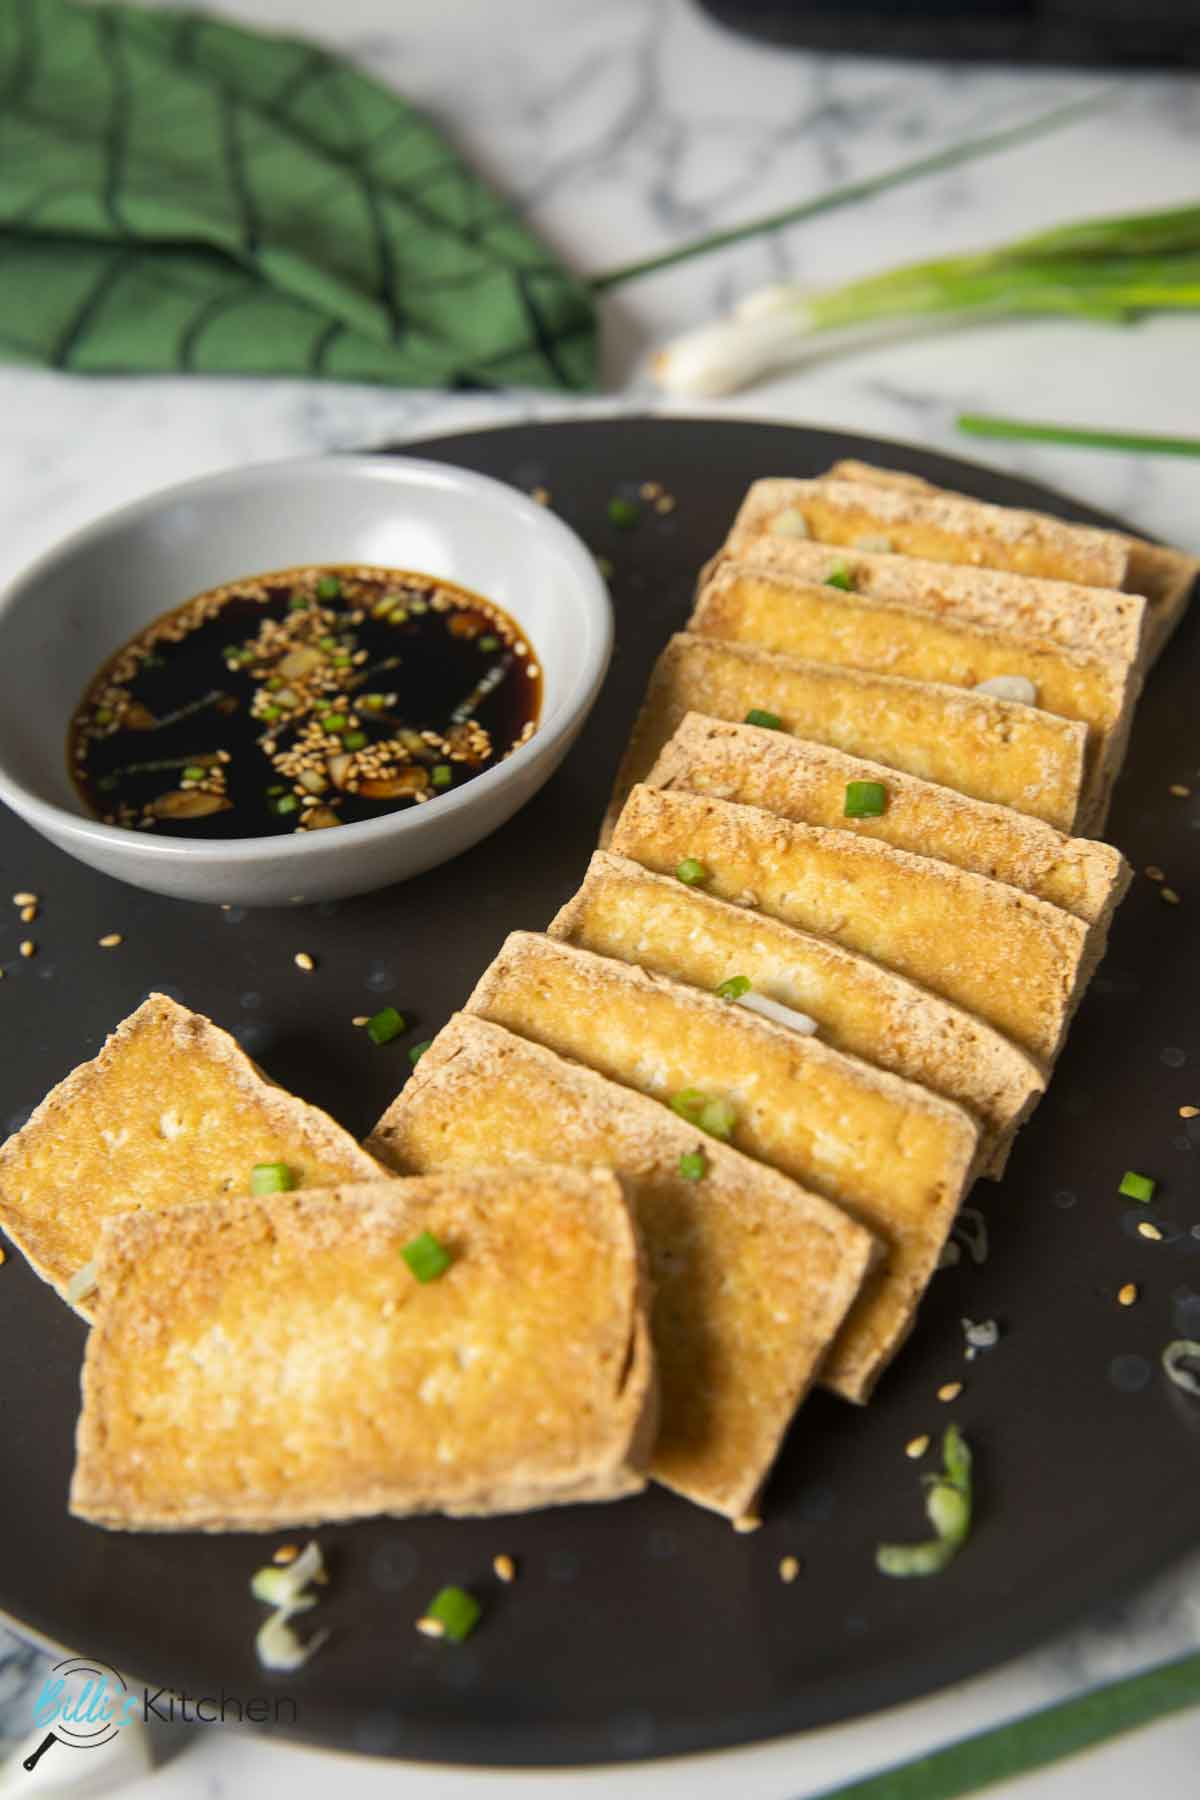 Crispy, fried tofu served with soy dipping sauce, garnished with spring onions.